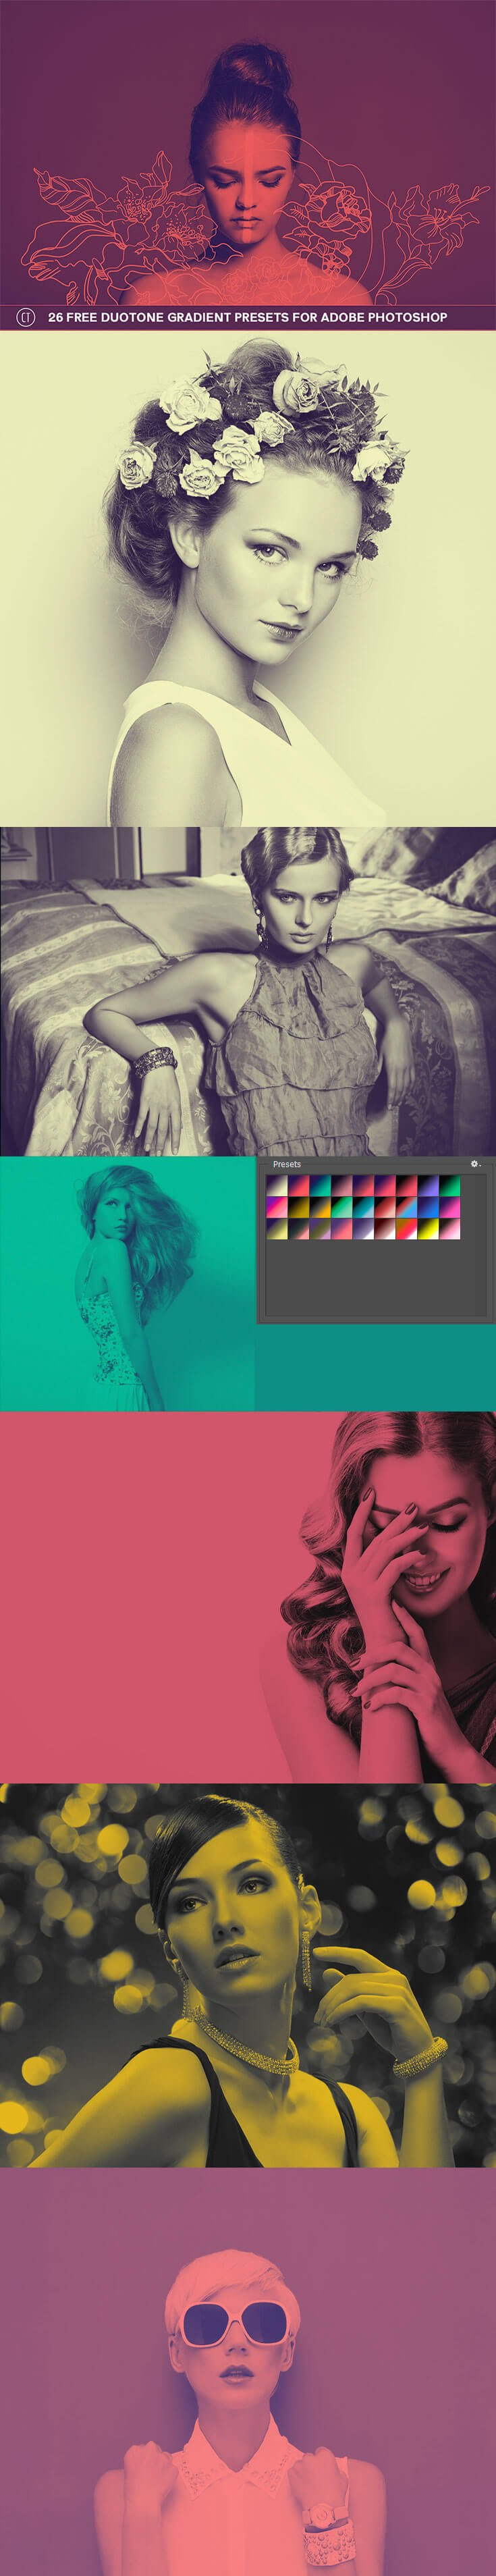 26-Free-Duotone-Gradient-Presets-for-Adobe-Photoshop